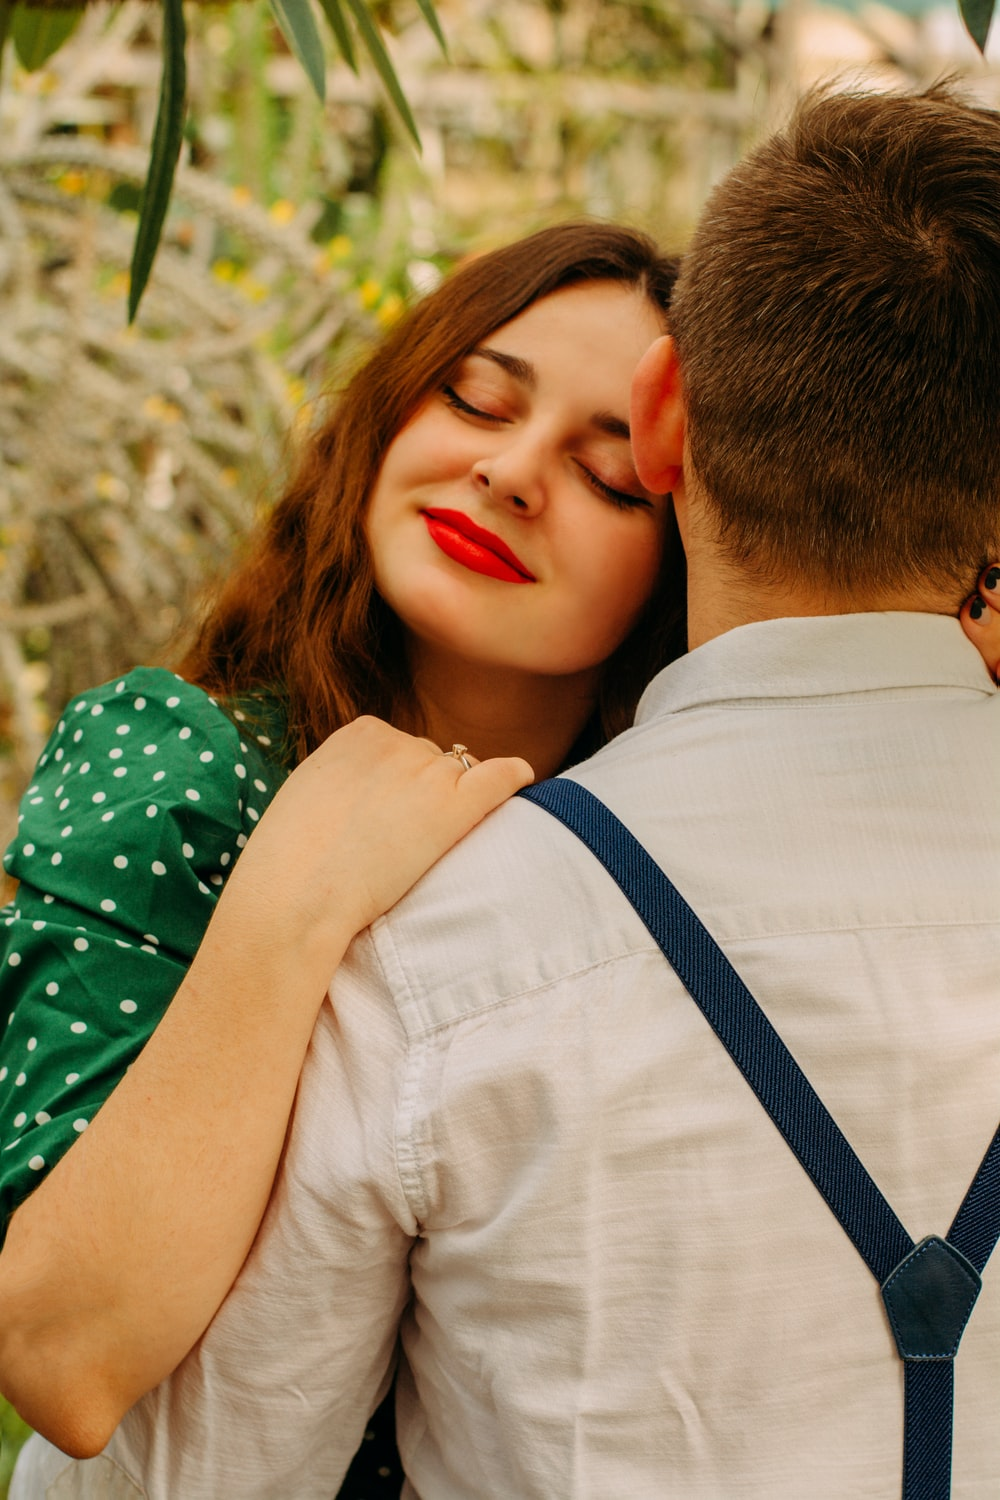 man in white dress shirt kissing woman in green and white floral dress